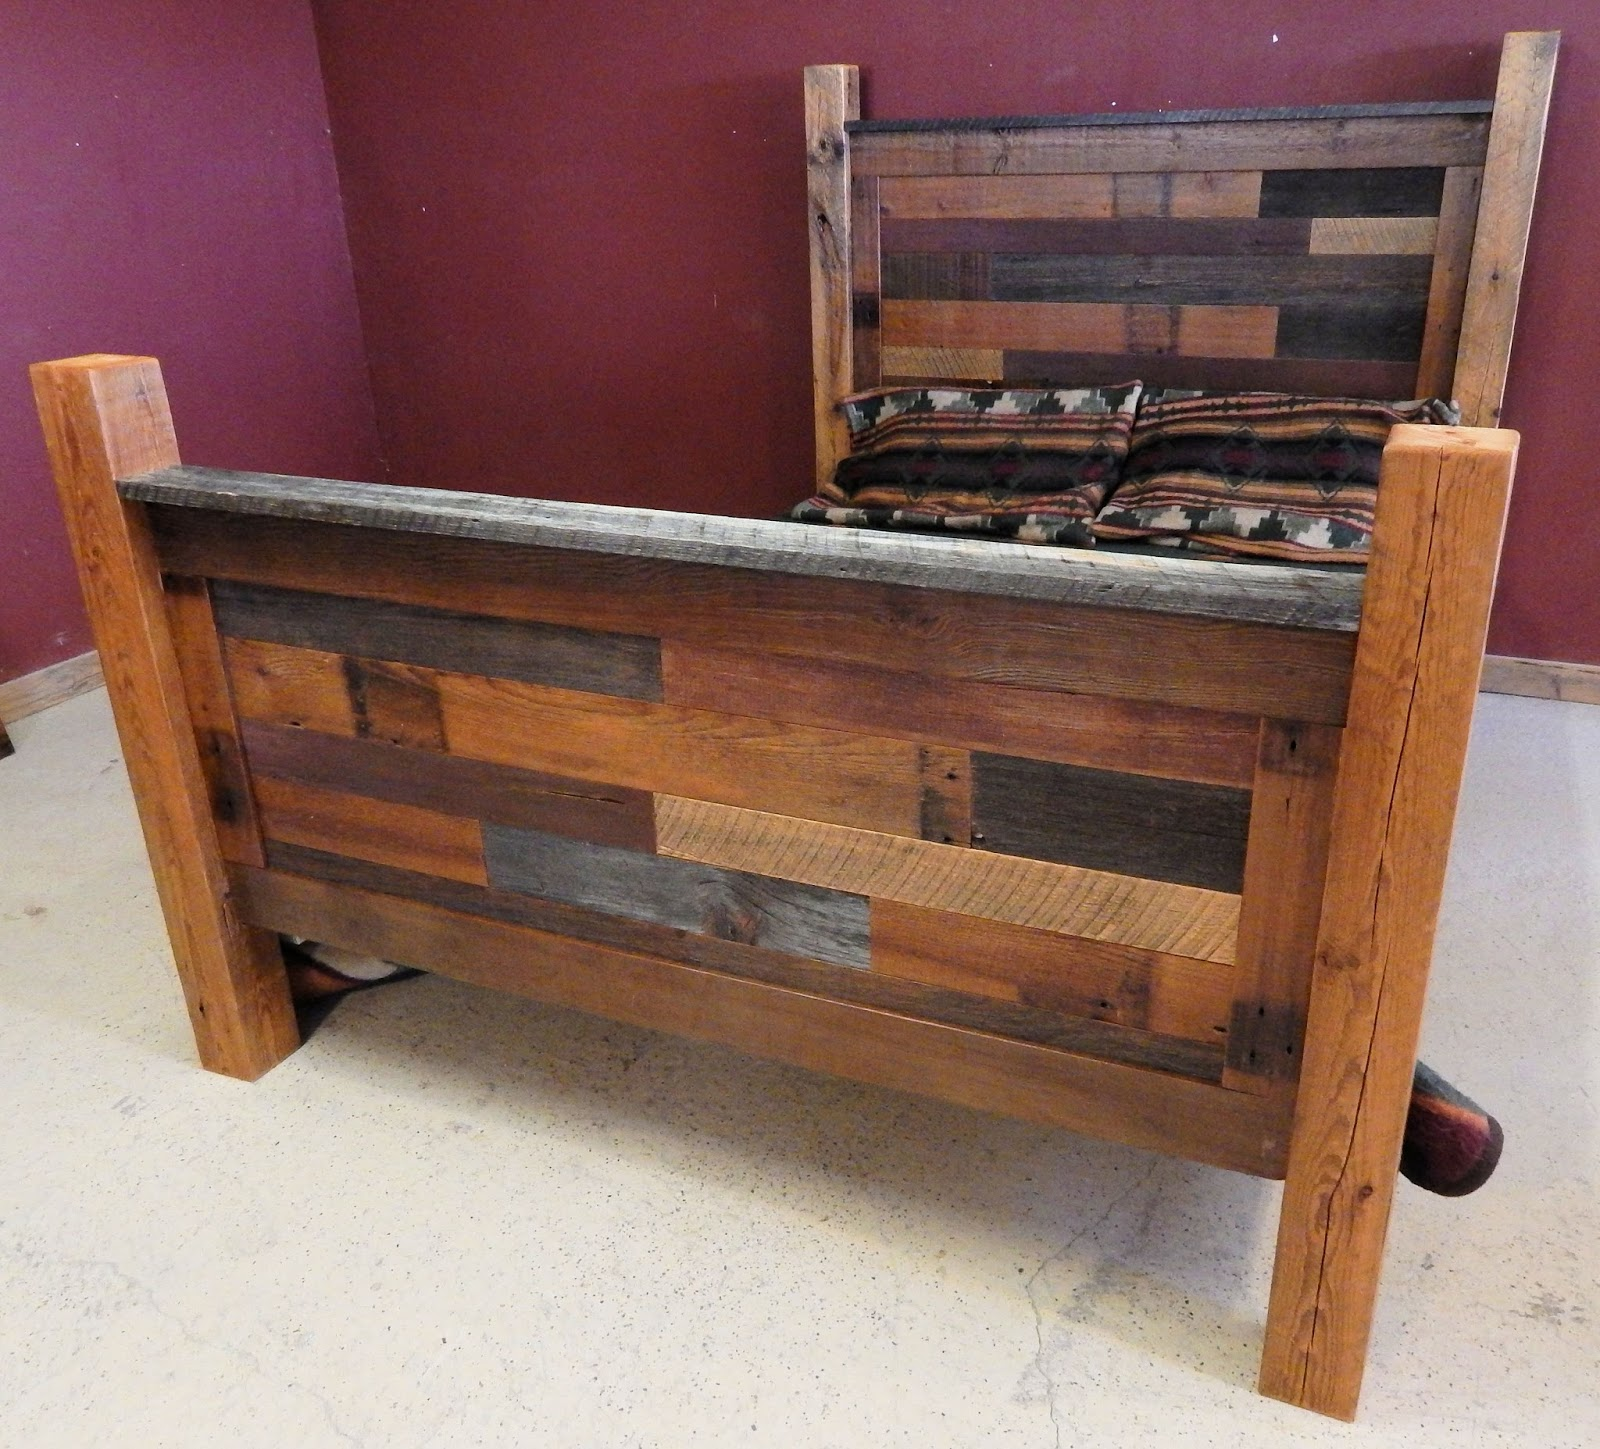 Log furniture barnwood furniture rustic furniture Furniture made from barn wood